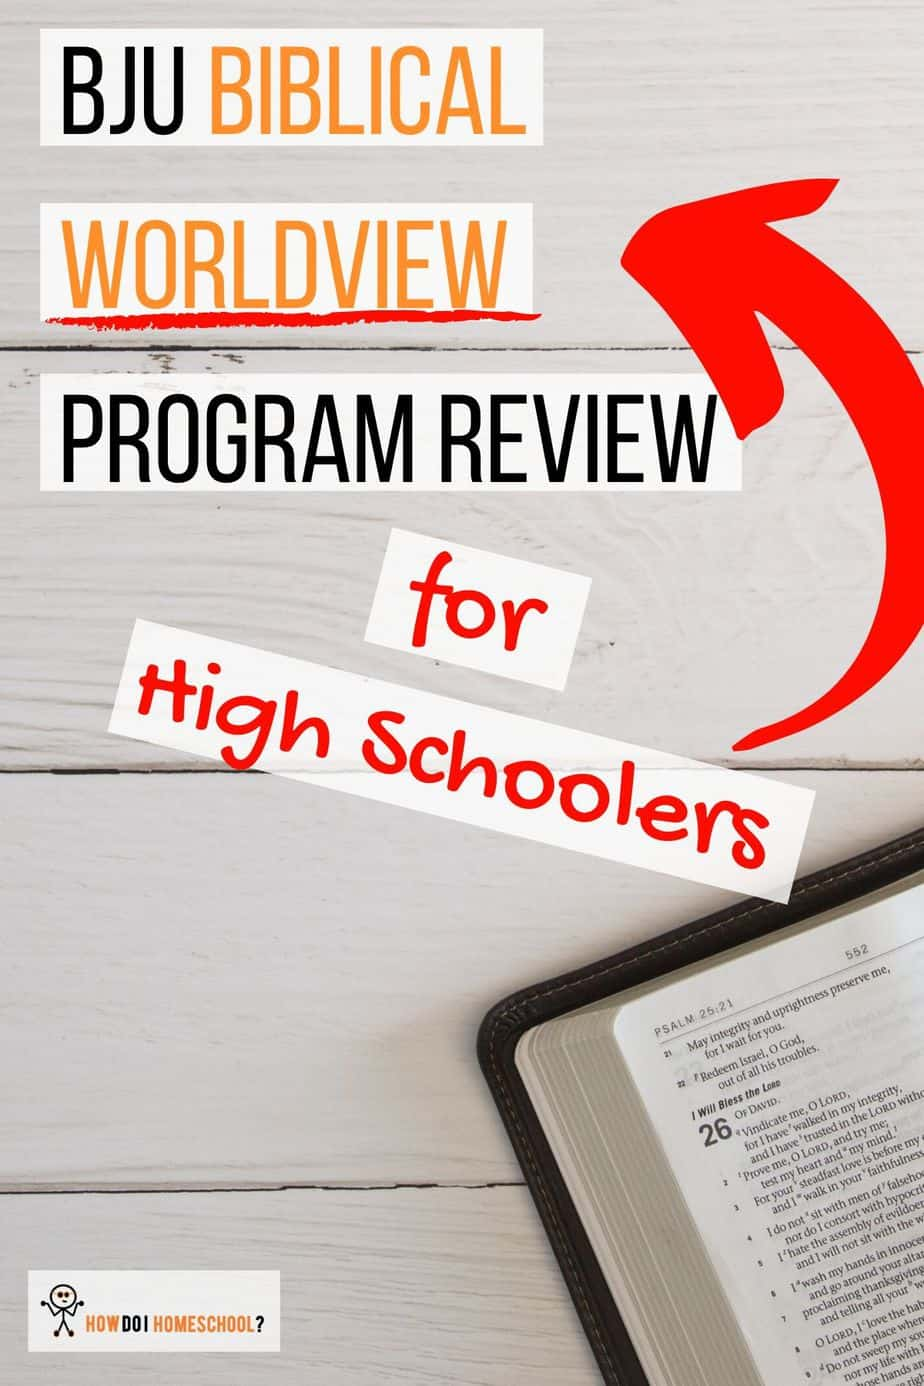 Train your high school homeschoolers in a biblical worldview using the BJU Biblical Worldview curriculum. #bju #worldview